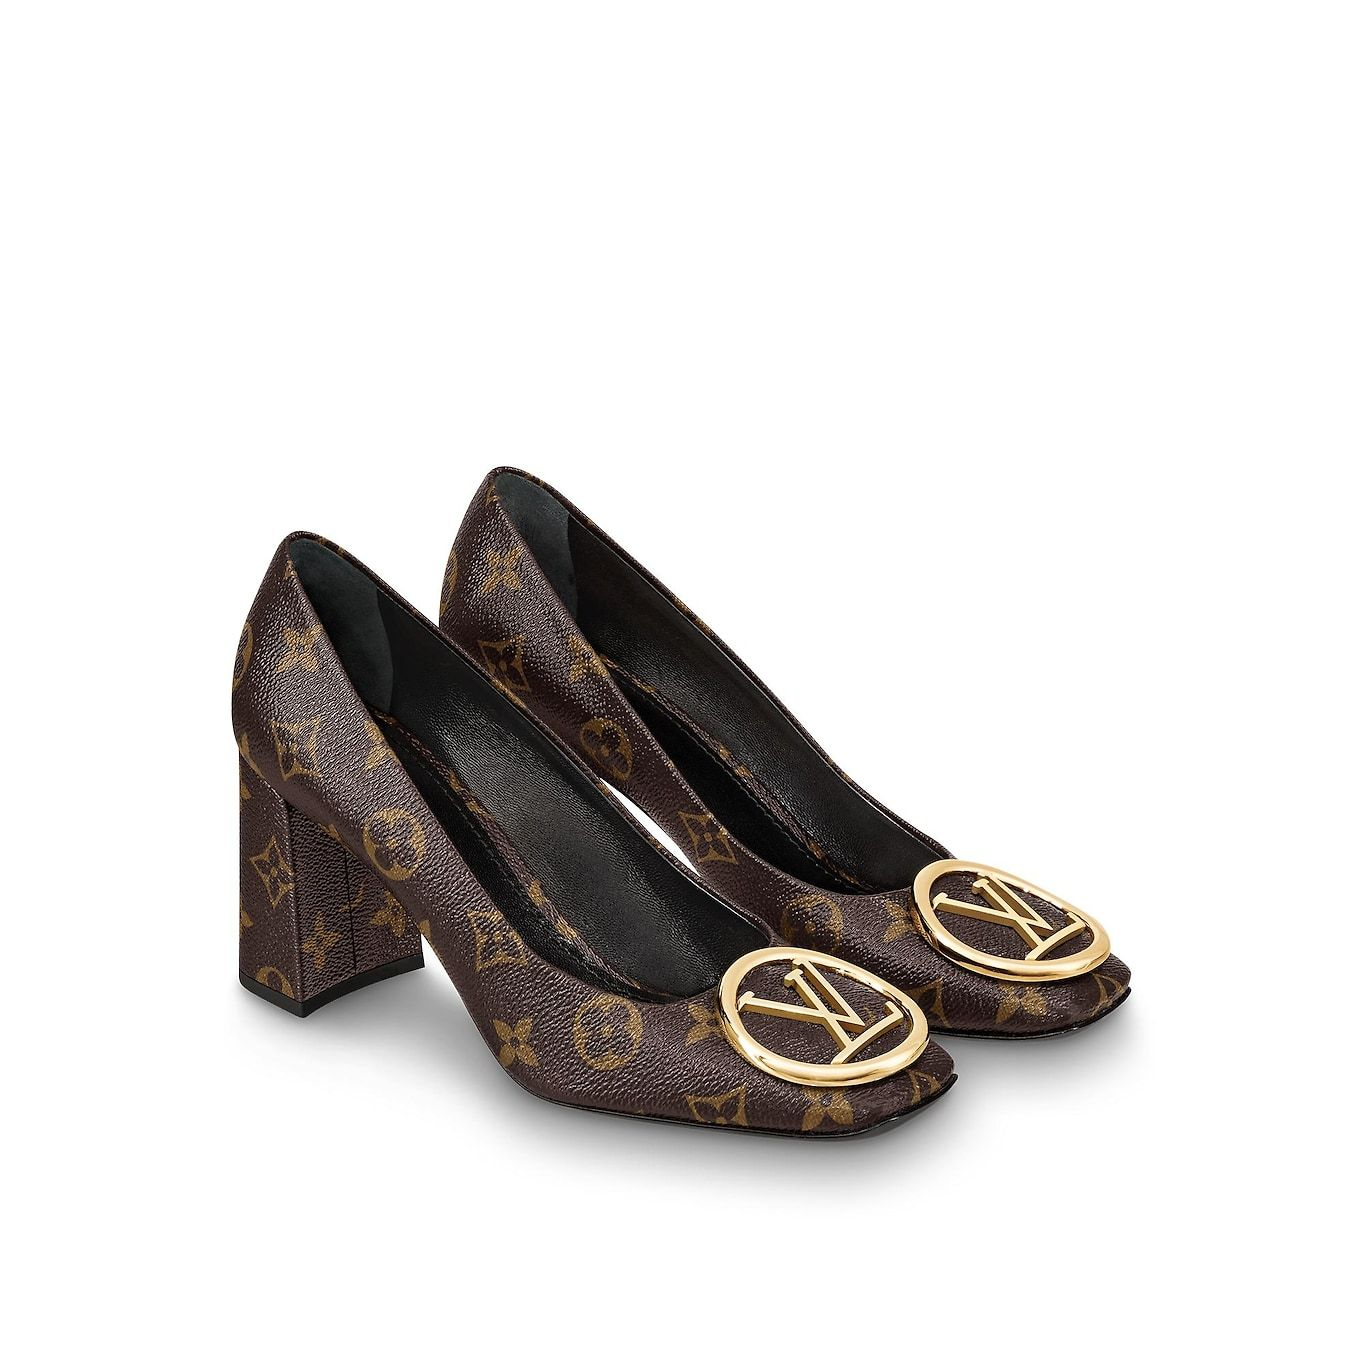 7c5cbf9d4f1 View 2 - Madeleine Pump in Women s Shoes All Collections collections by Louis  Vuitton